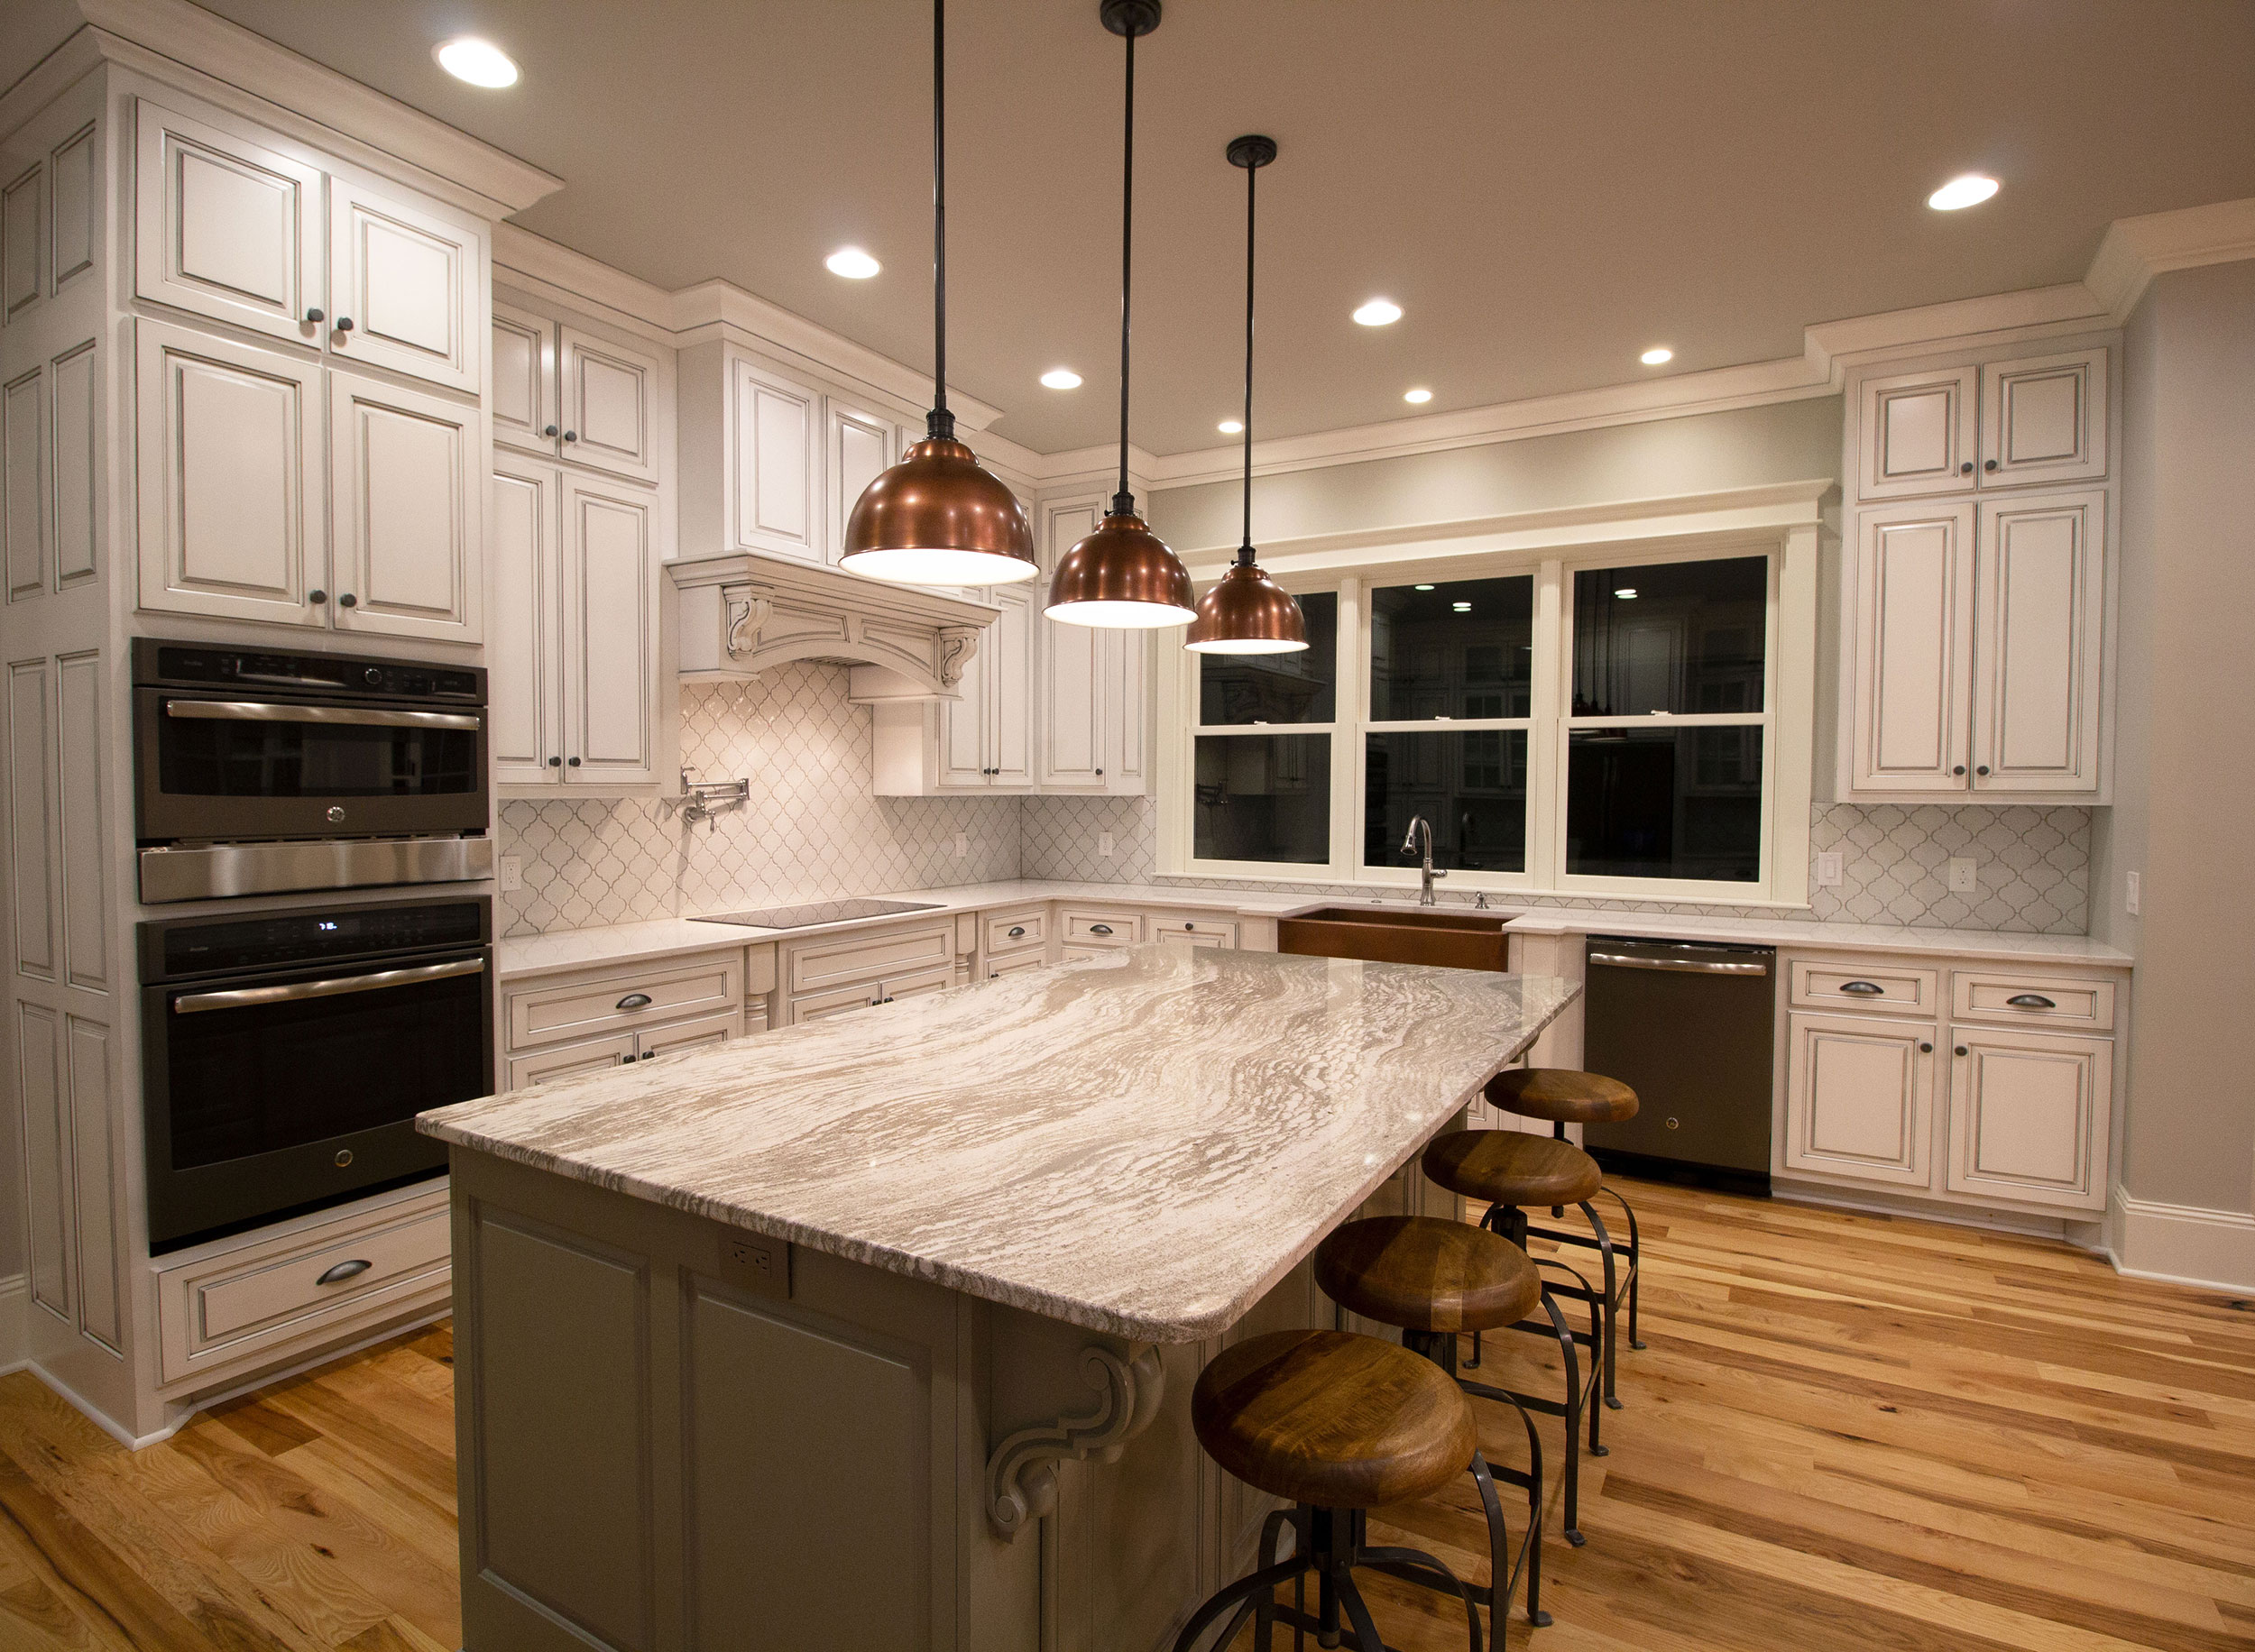 CopperRock Kitchen Design